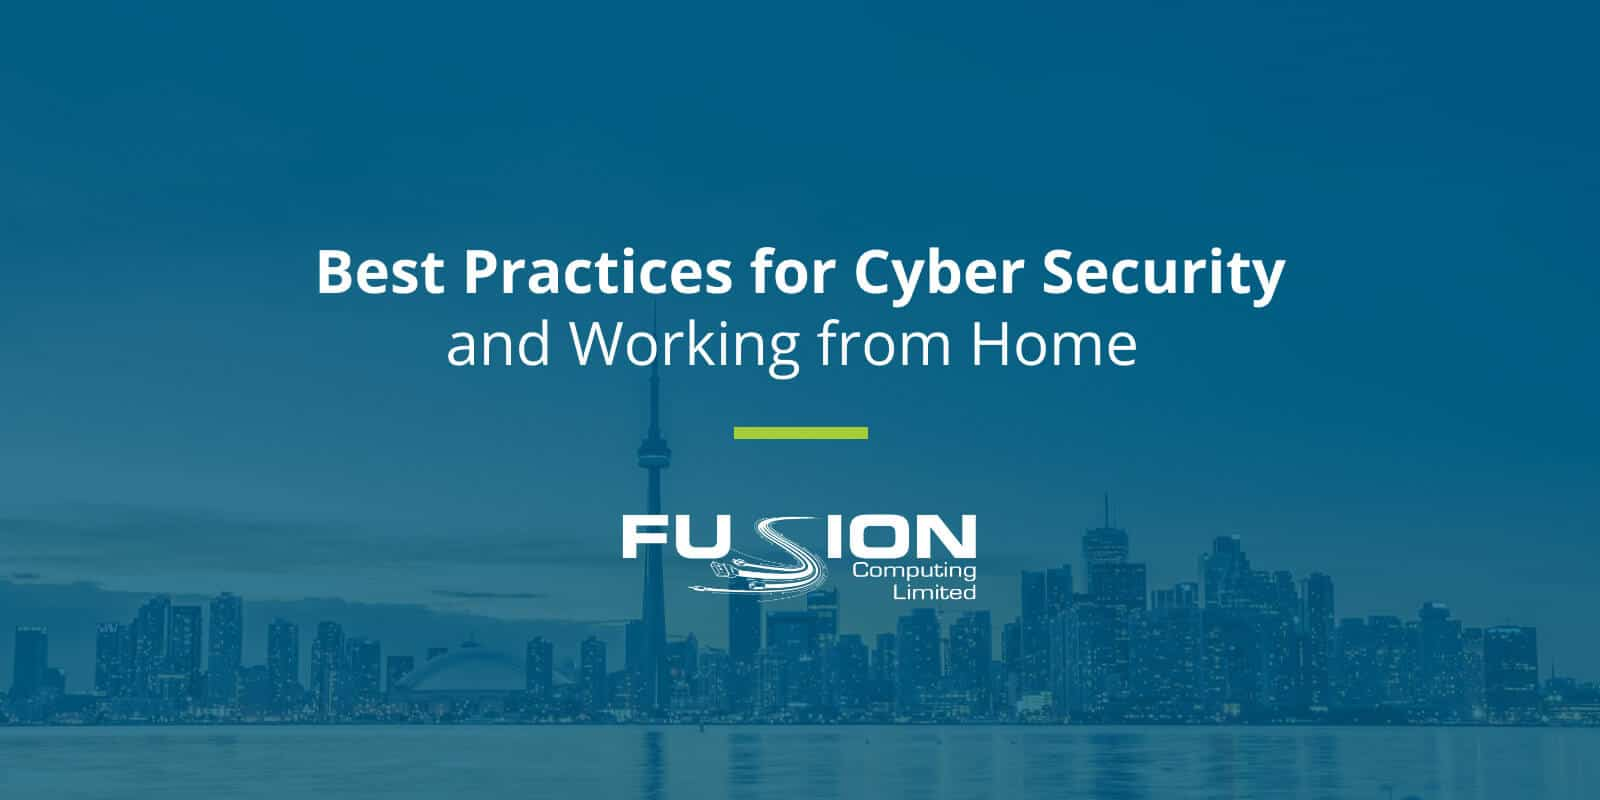 Best Practices for Cyber Security and Working from Home